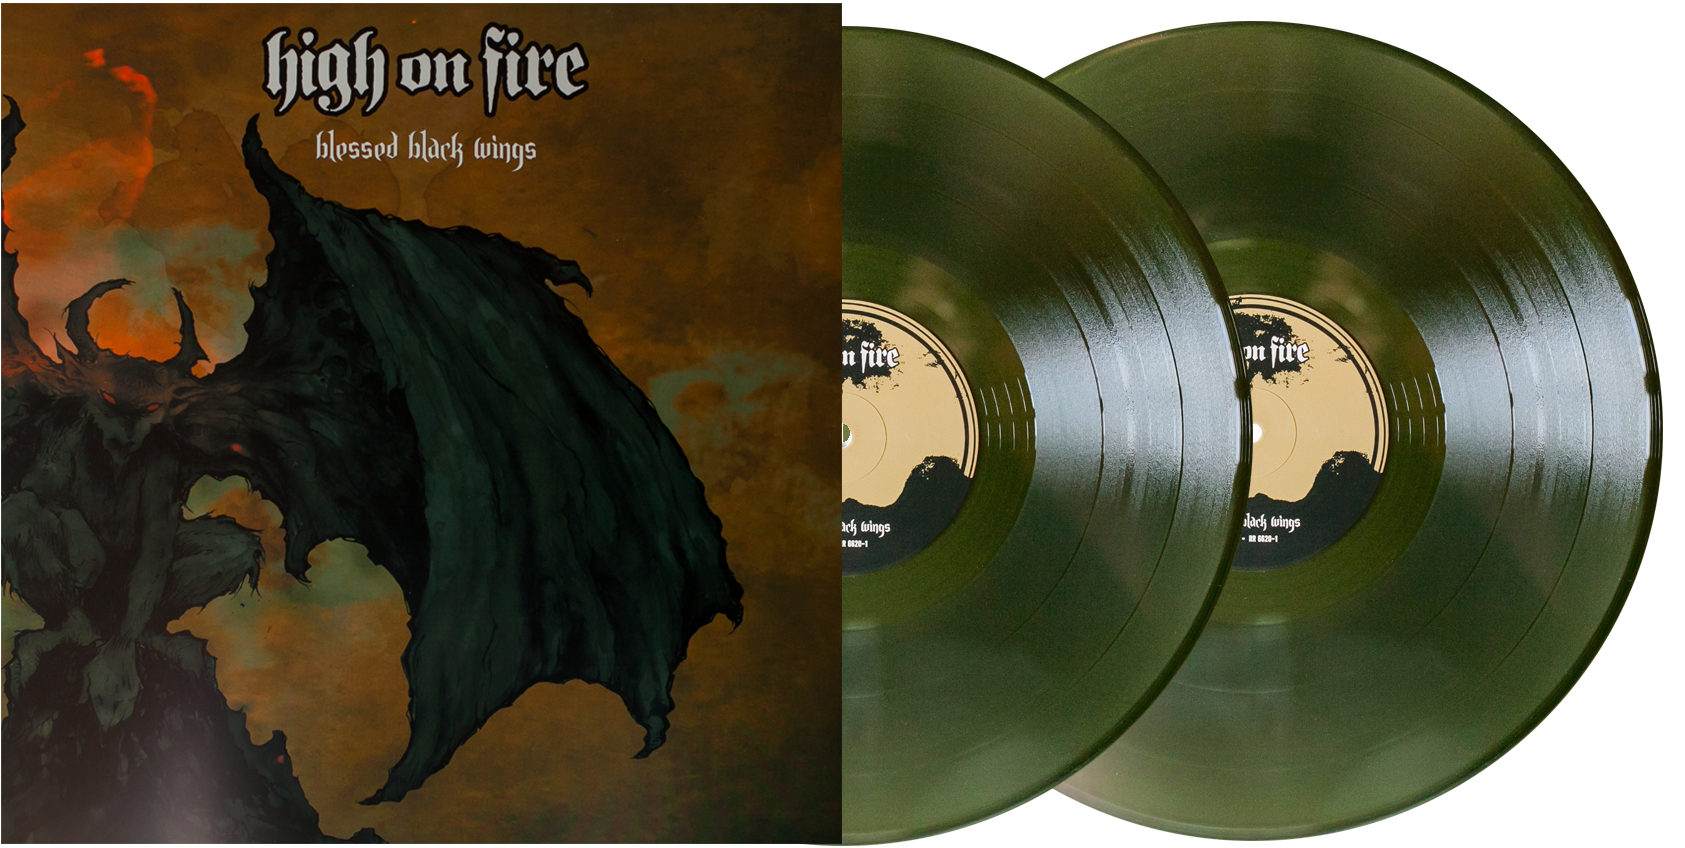 High on Fire product